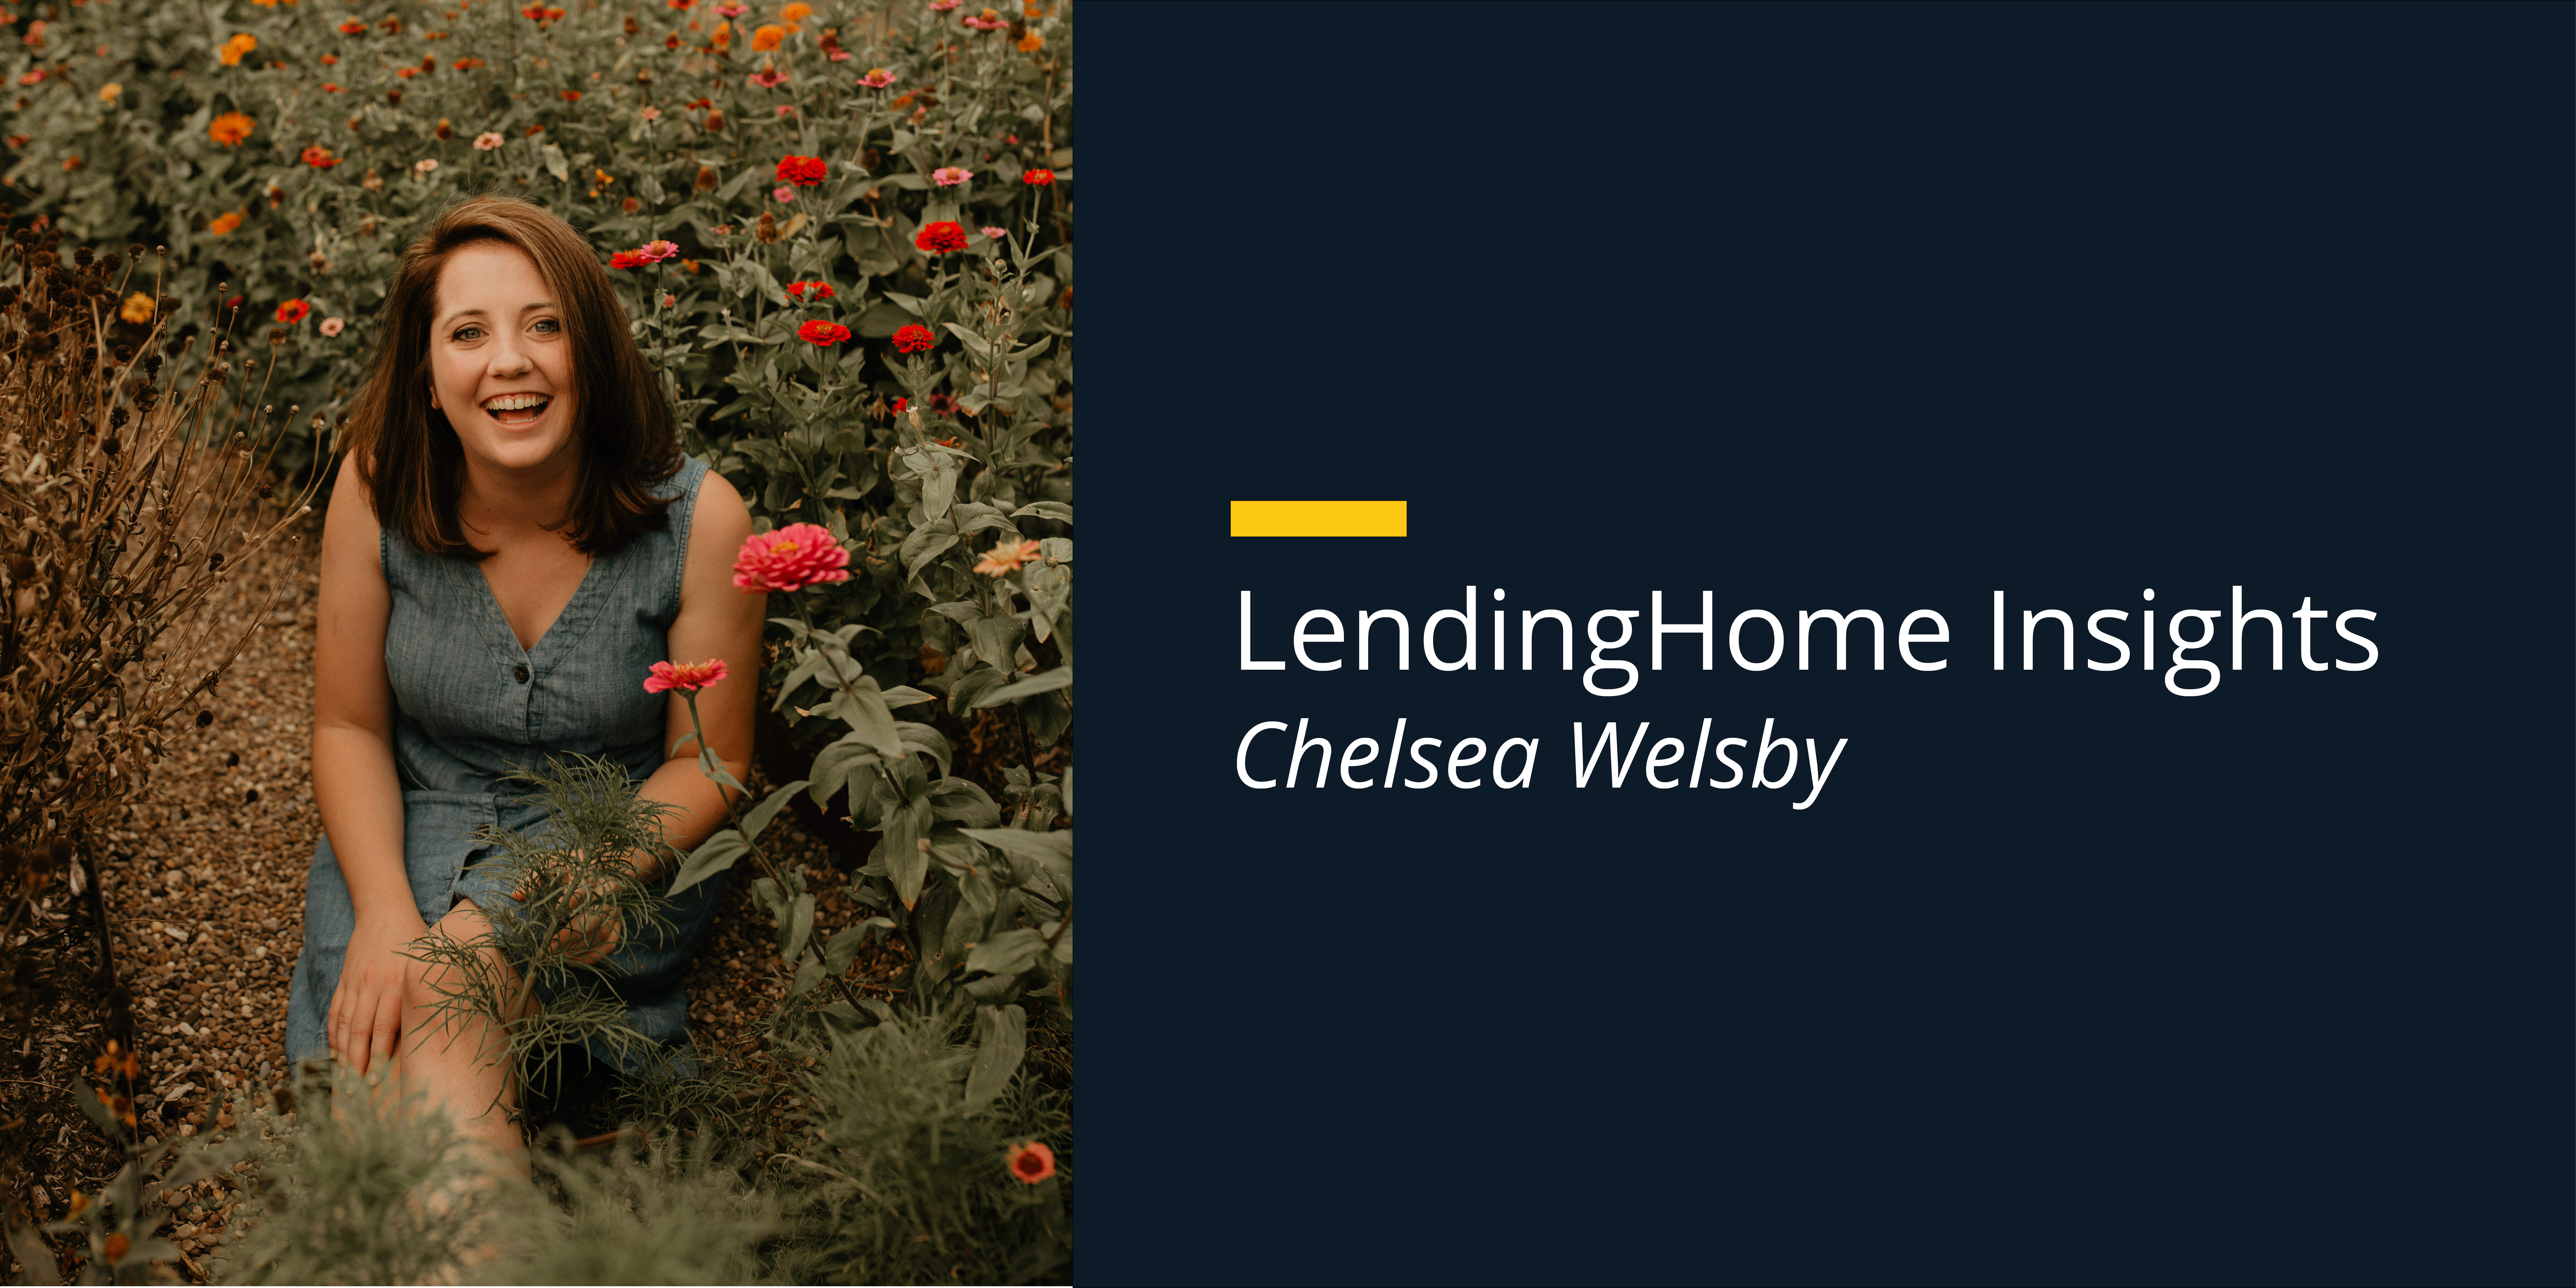 Lending Home: the lendor to get a loan to flip a house from and more.